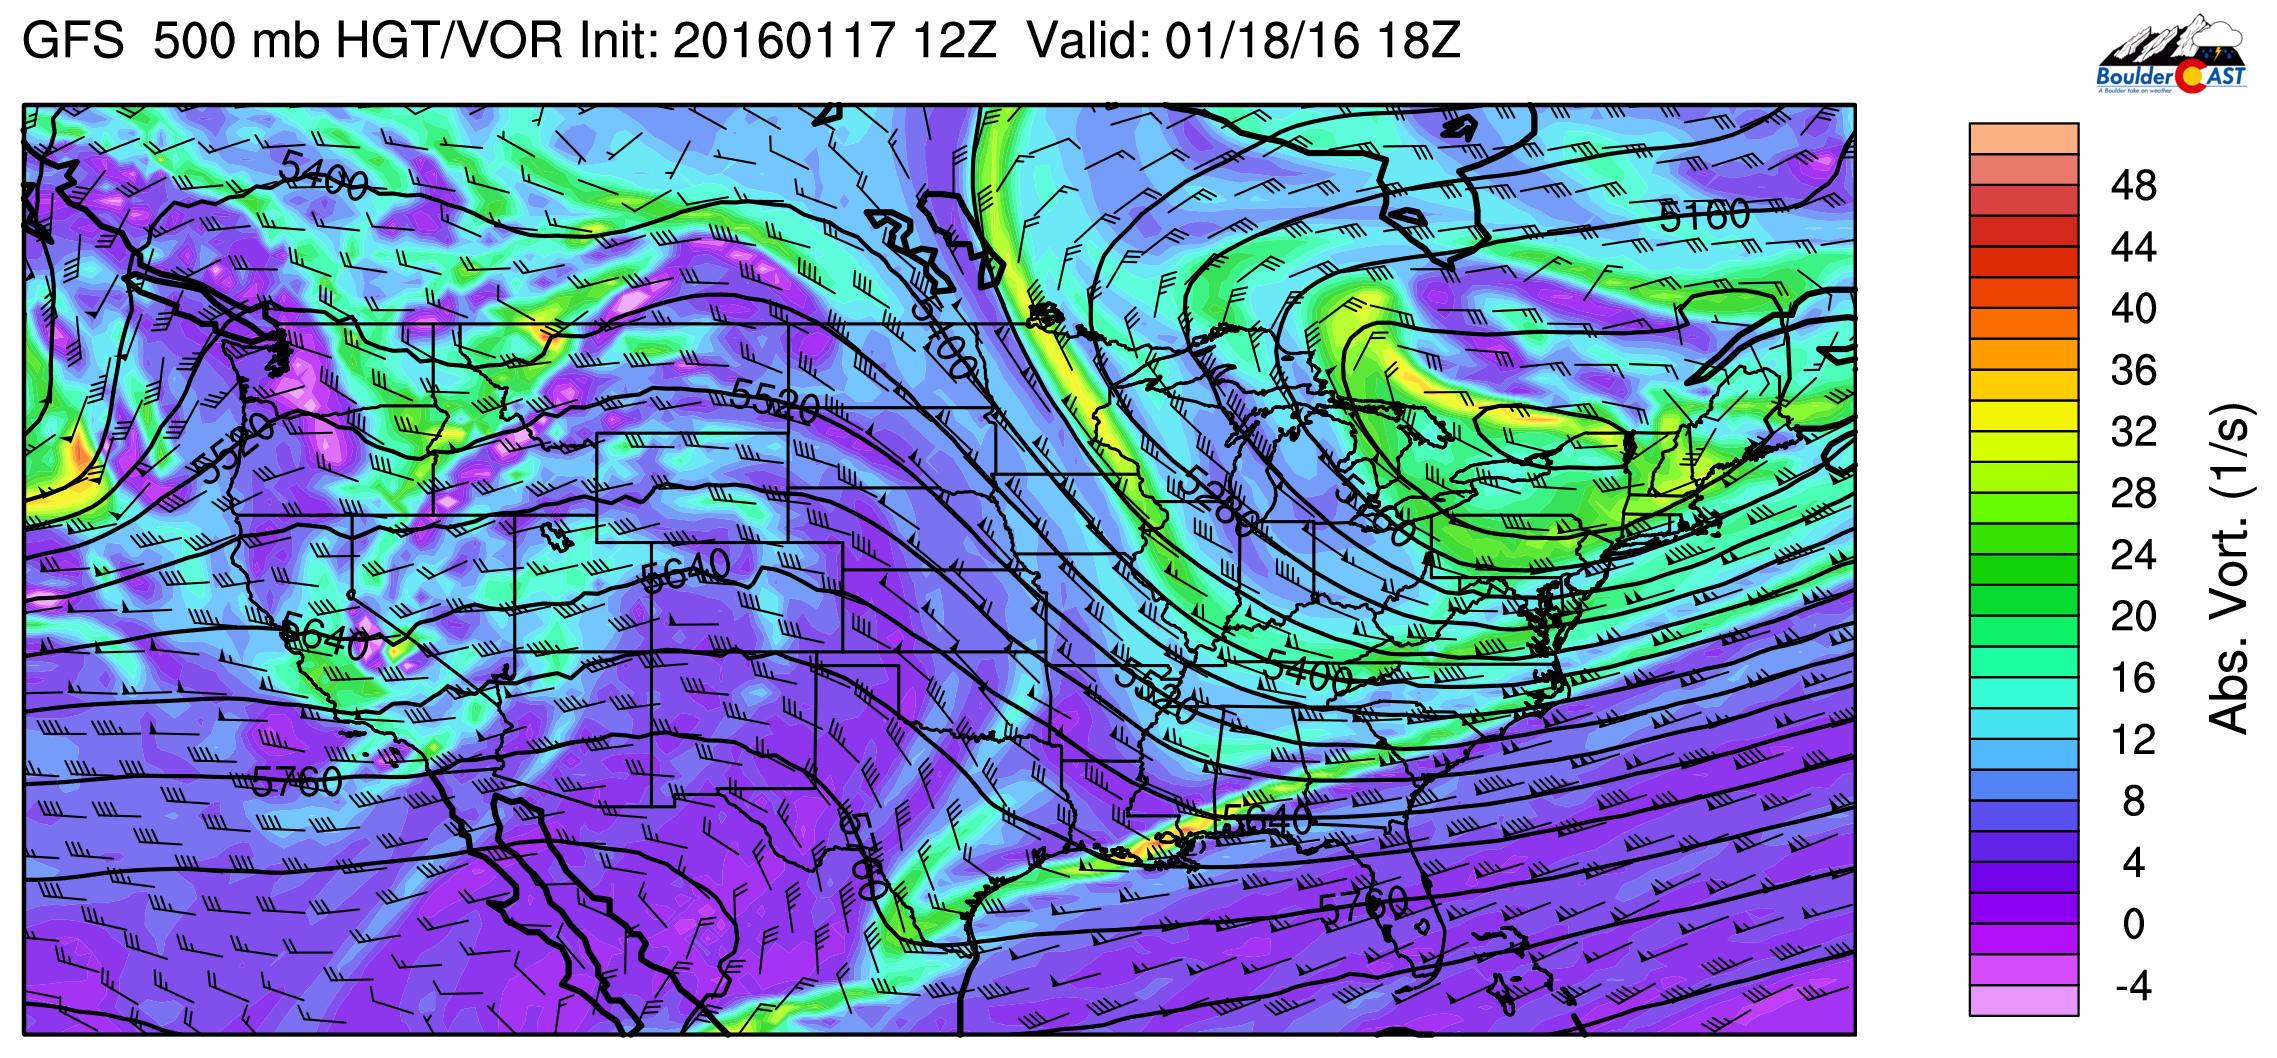 GFS 500mb vorticity map, valid at 11am today. Ridging is present over Colorado, but out next system is already ashore in California.